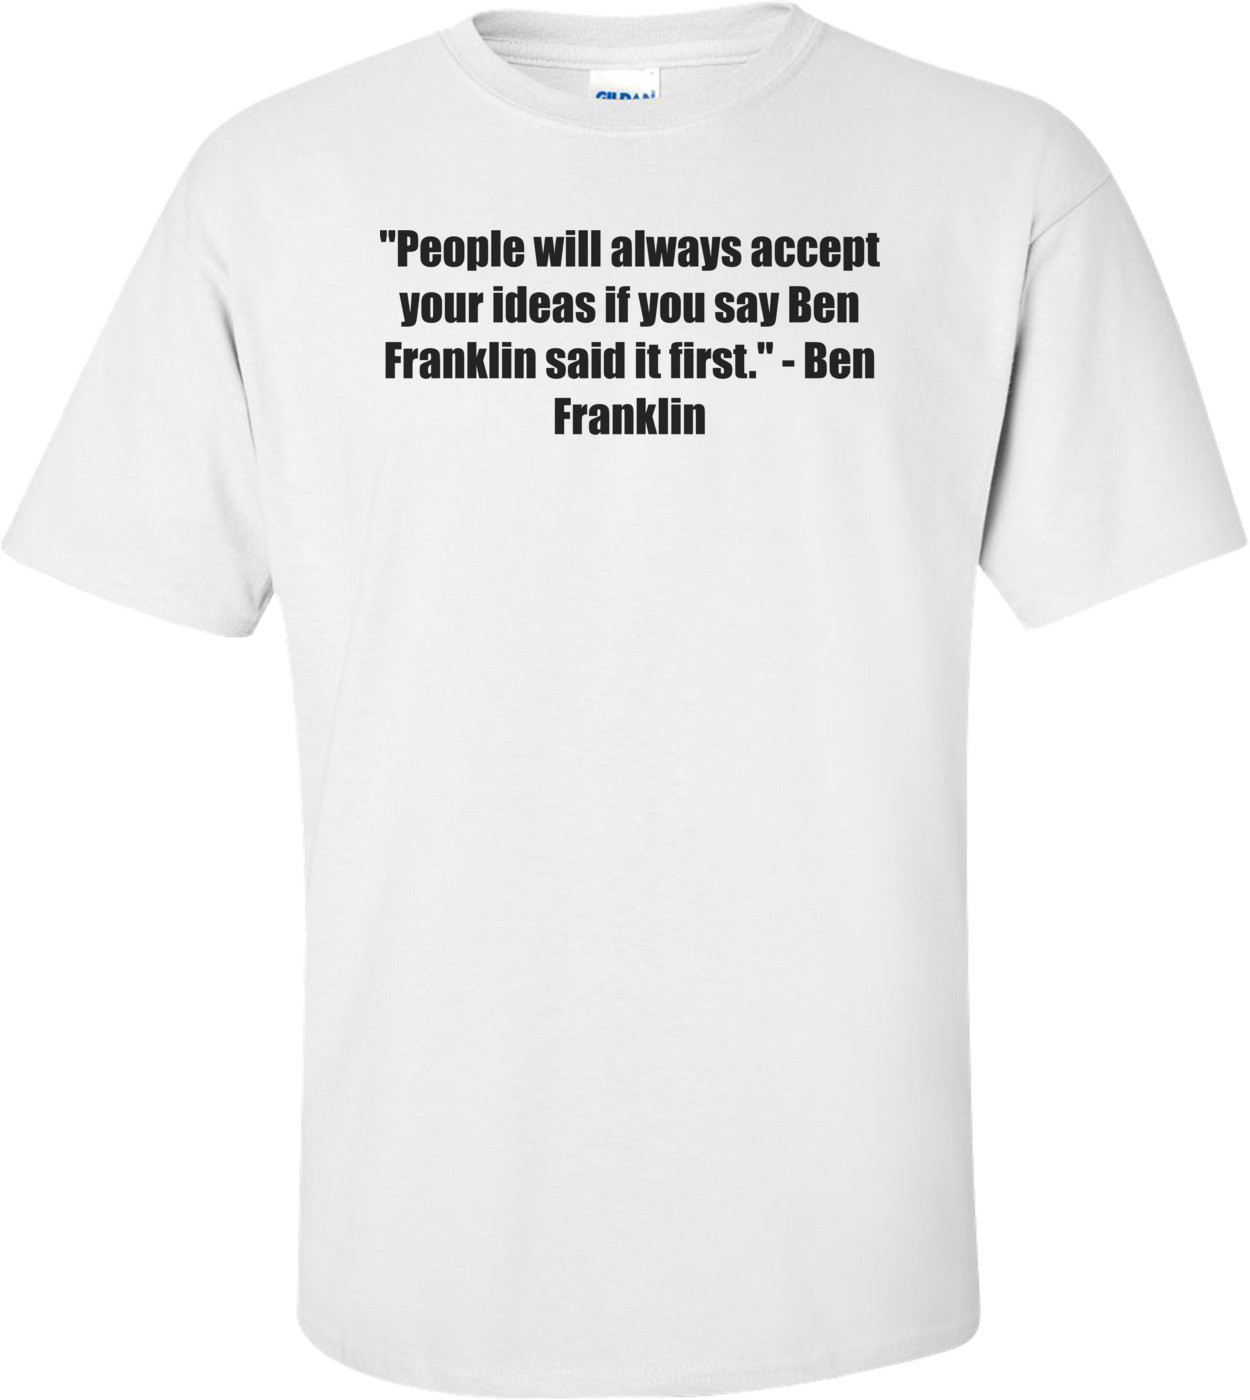 """People will always accept your ideas if you say Ben Franklin said it first."" - Ben Franklin Shirt"